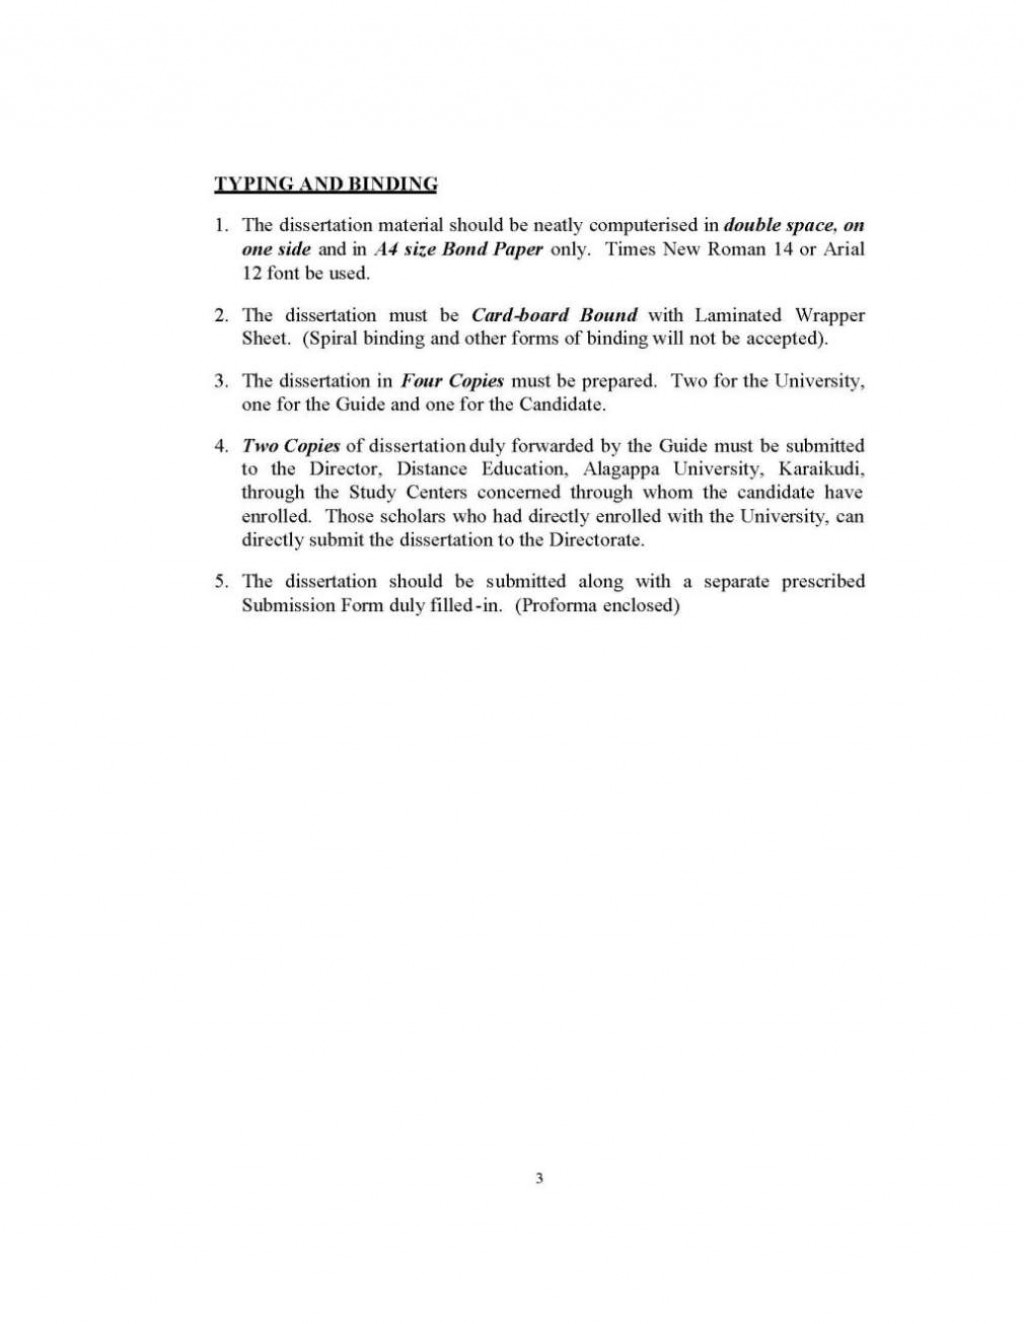 007 Essay Example Guideline For Format Of The Dissertation Report Mphil Political Dreaded Crossword Clue Large